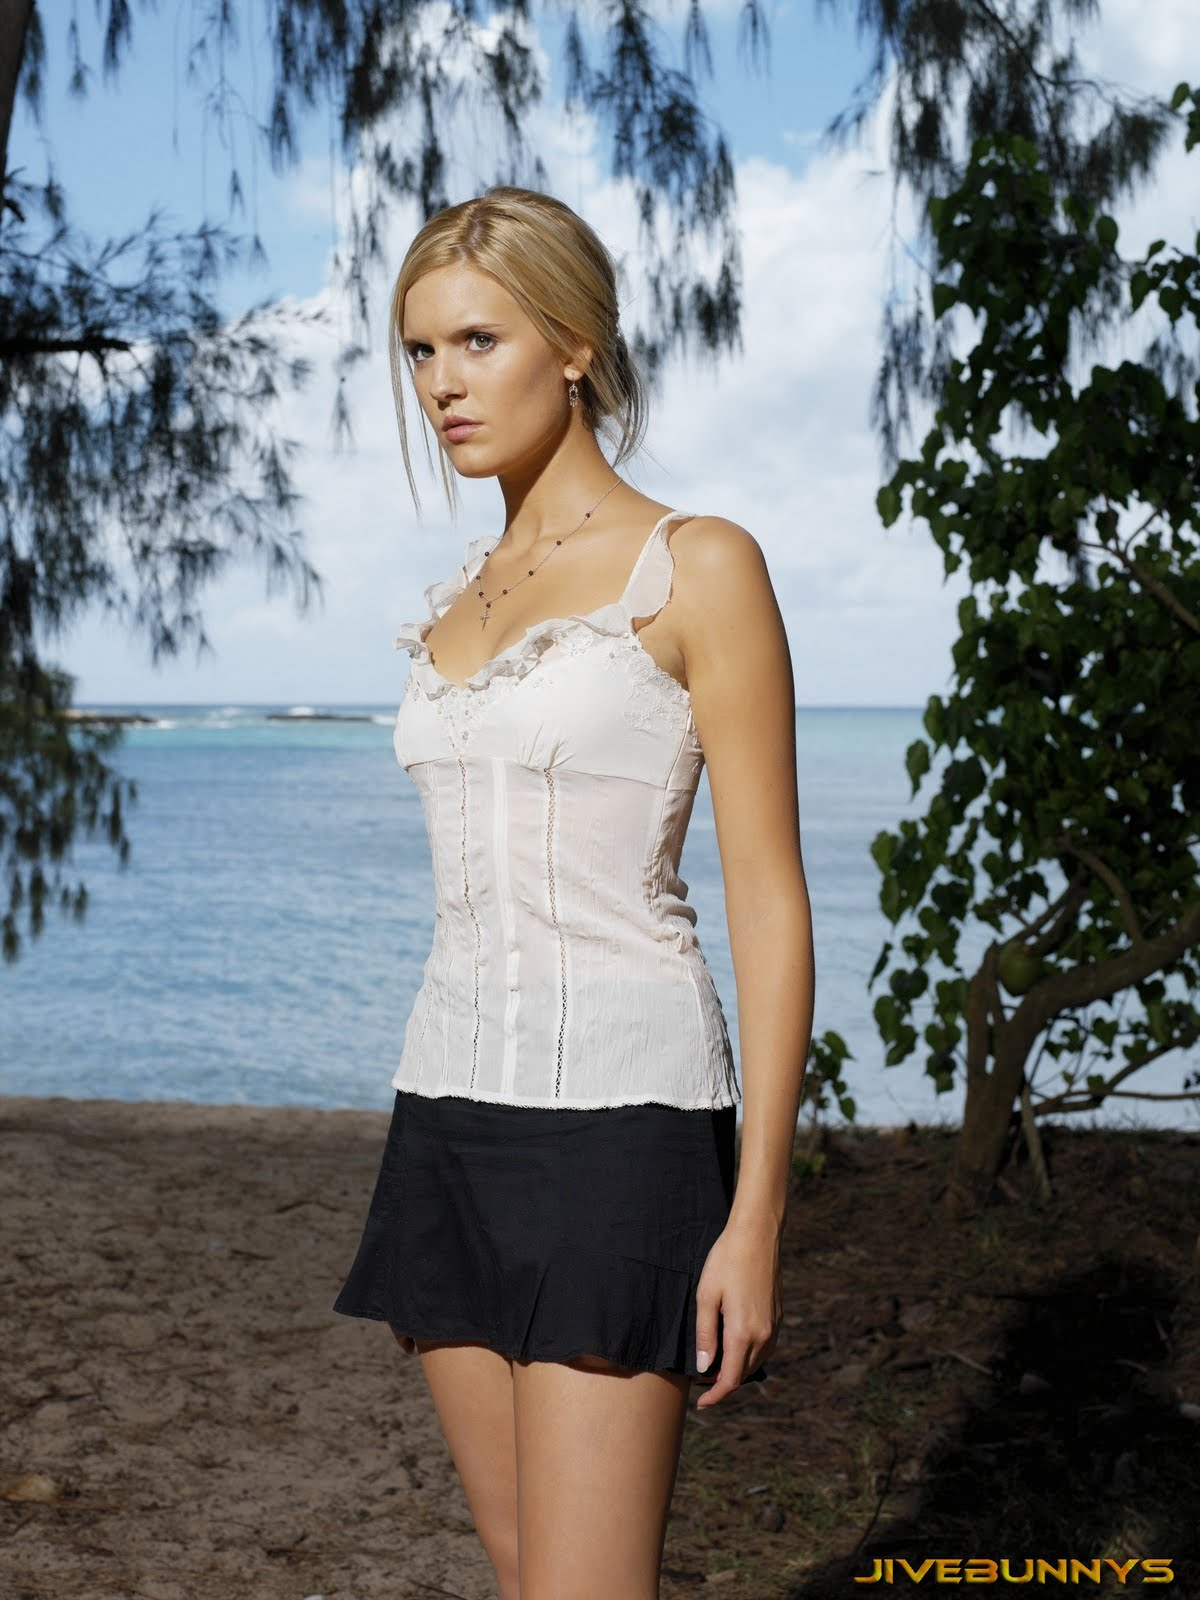 maggie grace special pictures 17 film actresses